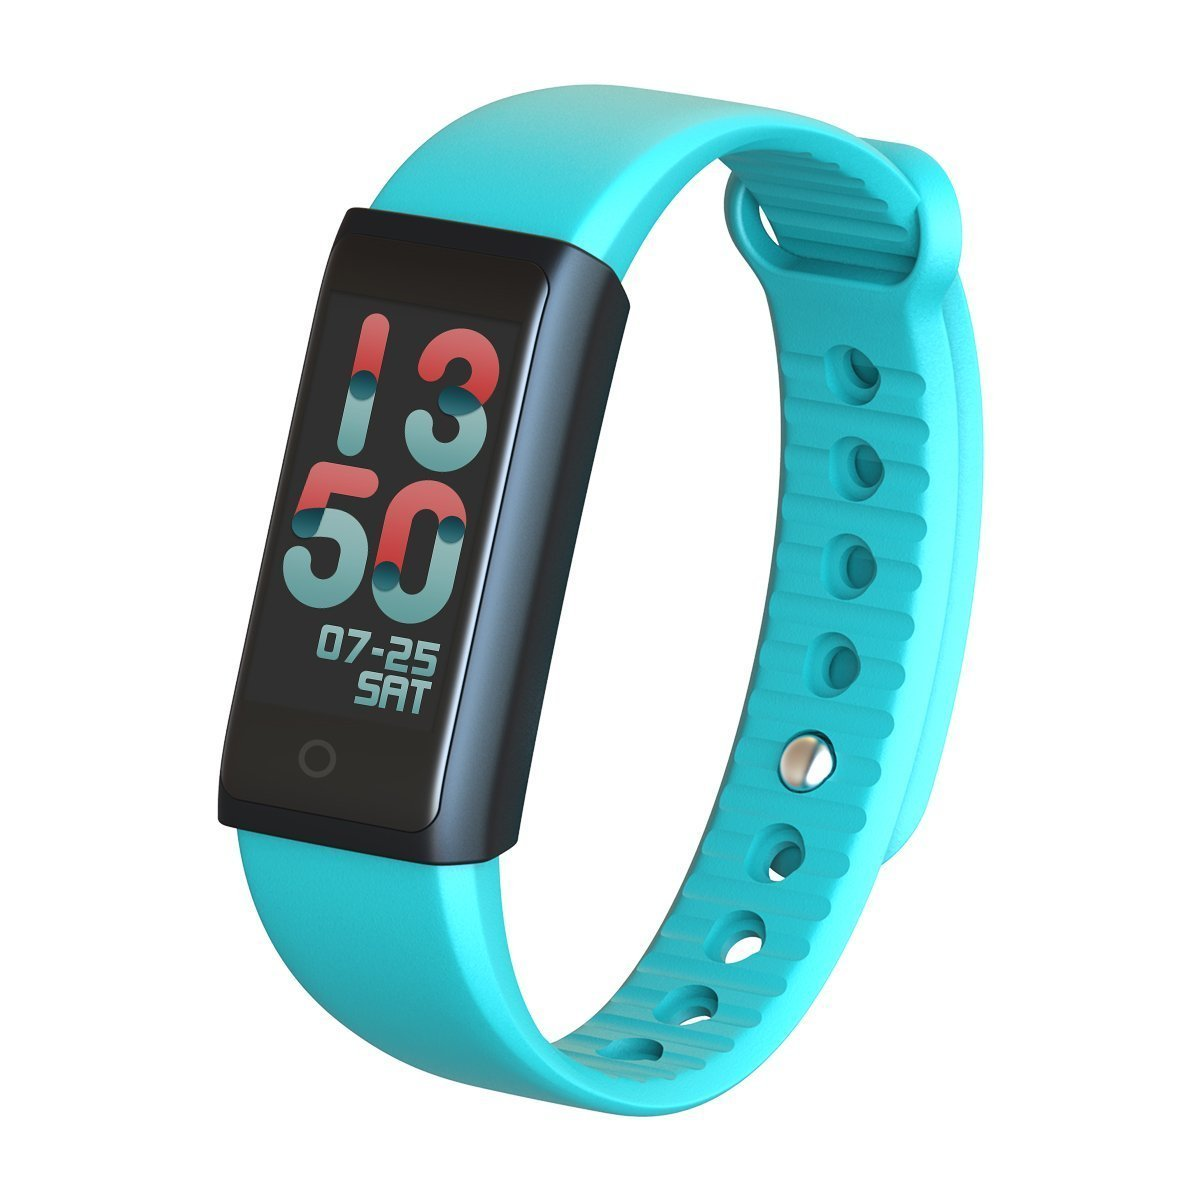 WOSUNG Fitness Tracker, Smart Heart Rate Monitor Bracelet Fitness Tracker with Blood Pressure Blood Oxygen Monitor, Bluetooth Pedometer Fitness Smart Bracelet Watch for IOS Android Smartphone (Green)